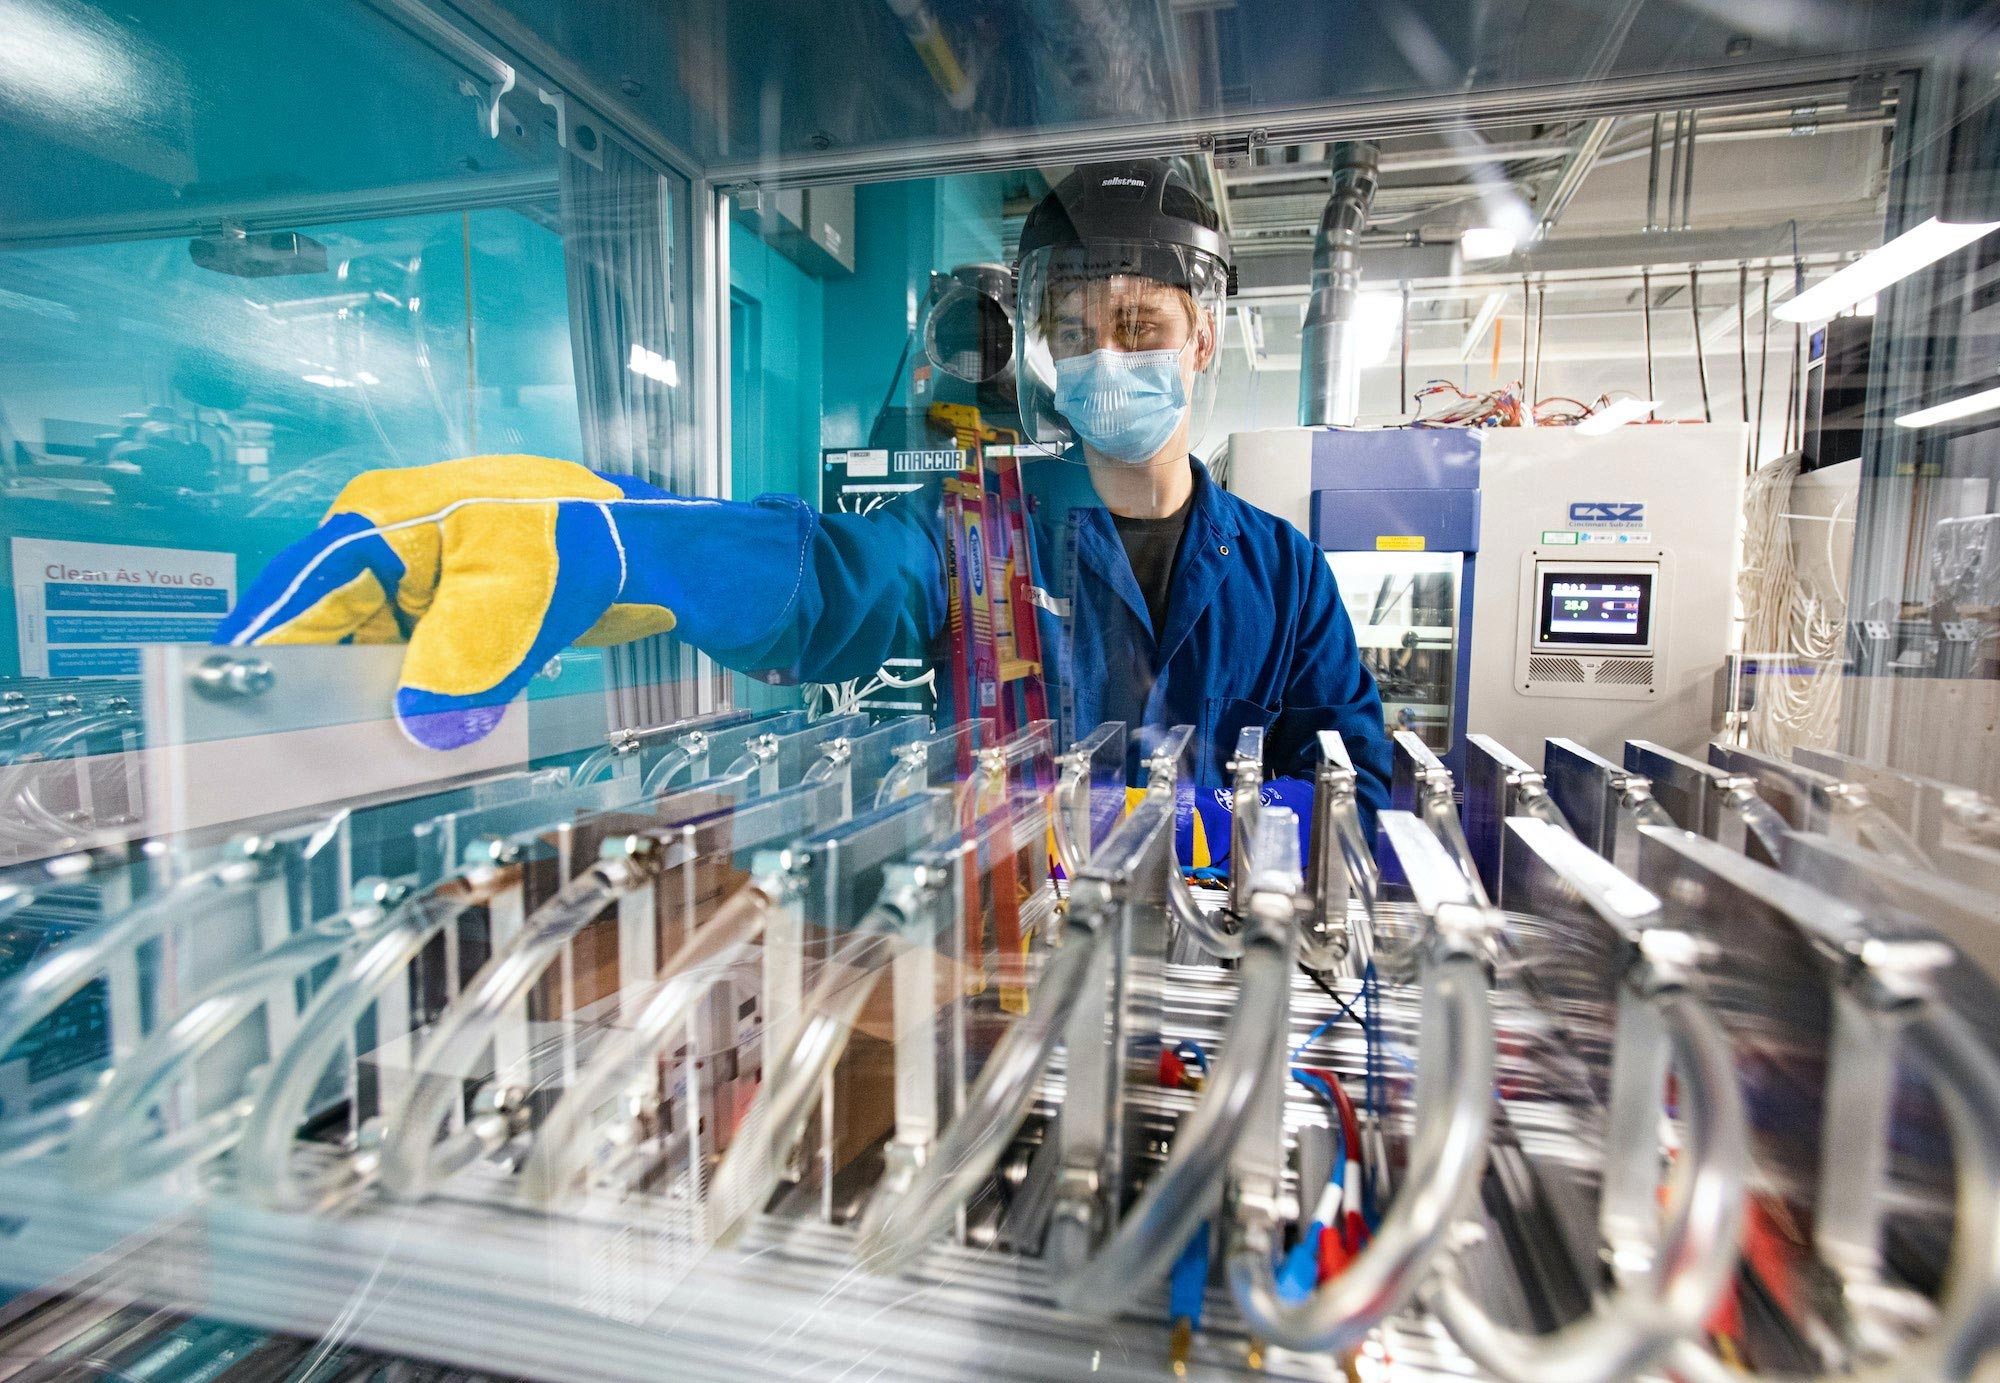 X-ray Experiments and Machine Learning Innovation Could Trim Years off Battery R&D